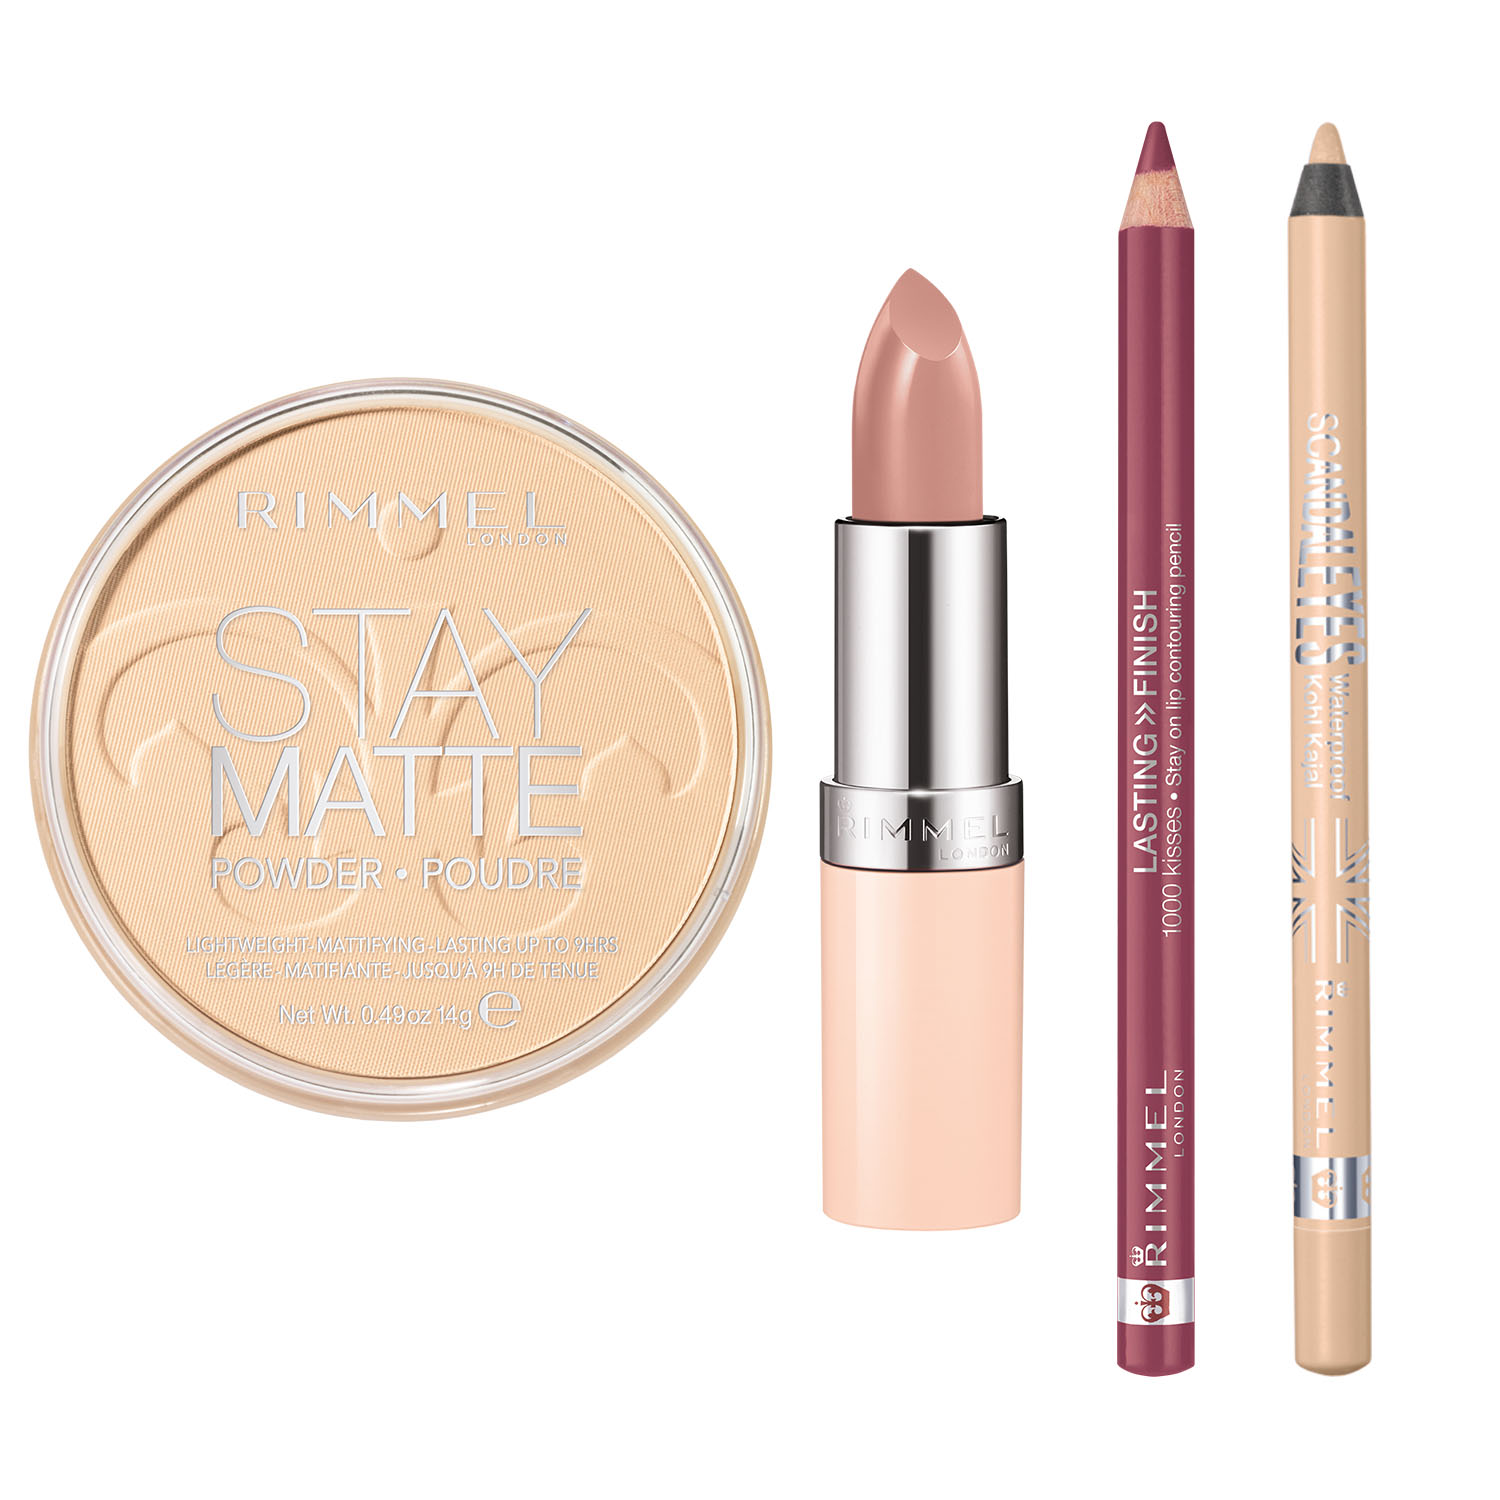 Rimmel Nude Collection Kit with Lasting Finish 1000 Kisses Lip Liner, Lasting Finish By Kate Nude Lipstick, Scandaleyes Waterproof Kohl Kajal Eyeliner and Stay Matte Pressed Powder